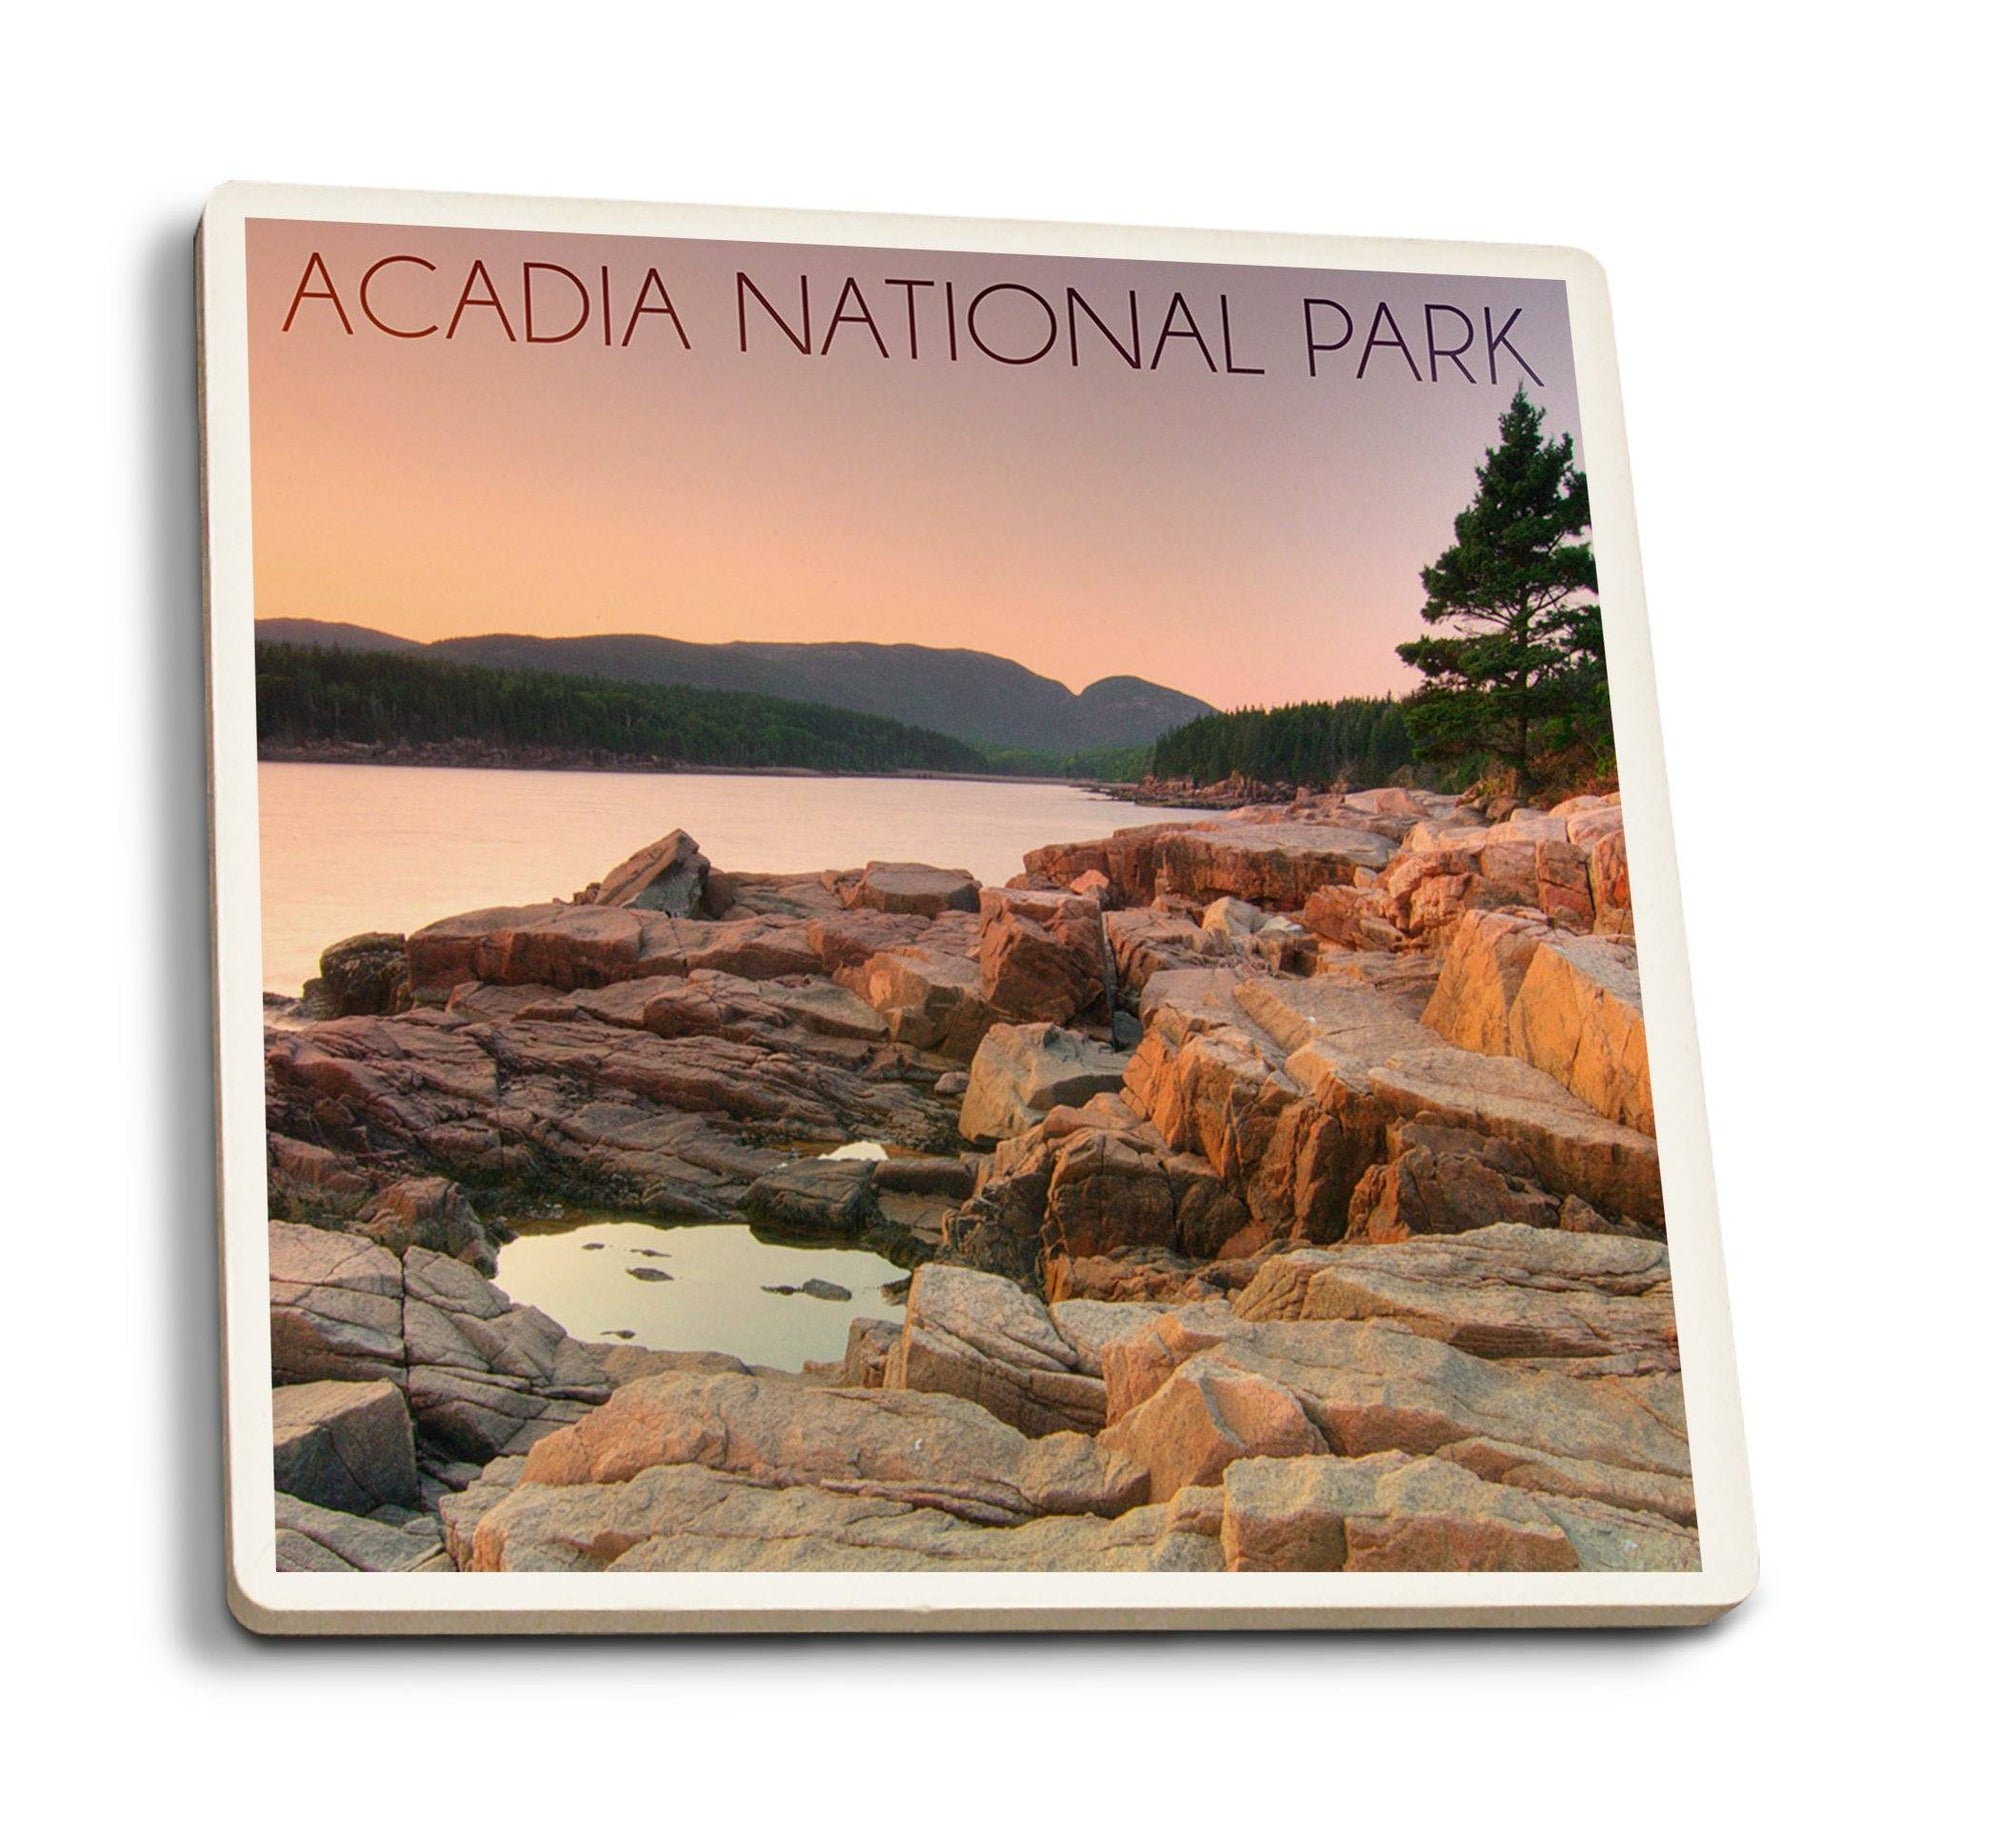 Coaster (Acadia National Park, Maine - Rocks and Water - Lantern Press Photography) Coaster Nightingale Boutique Coaster Pack